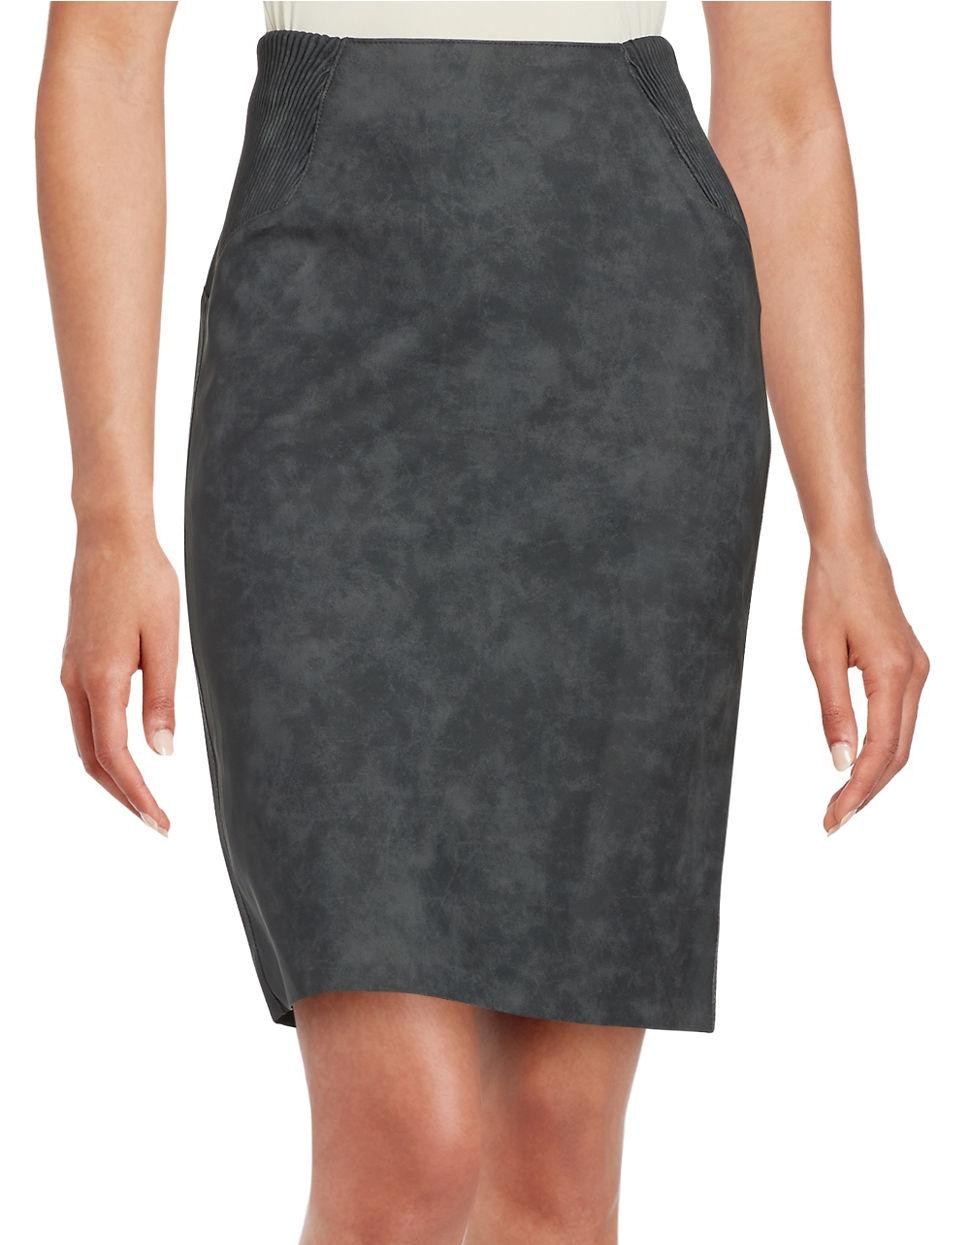 vero moda faux leather high waisted skirt in gray lyst